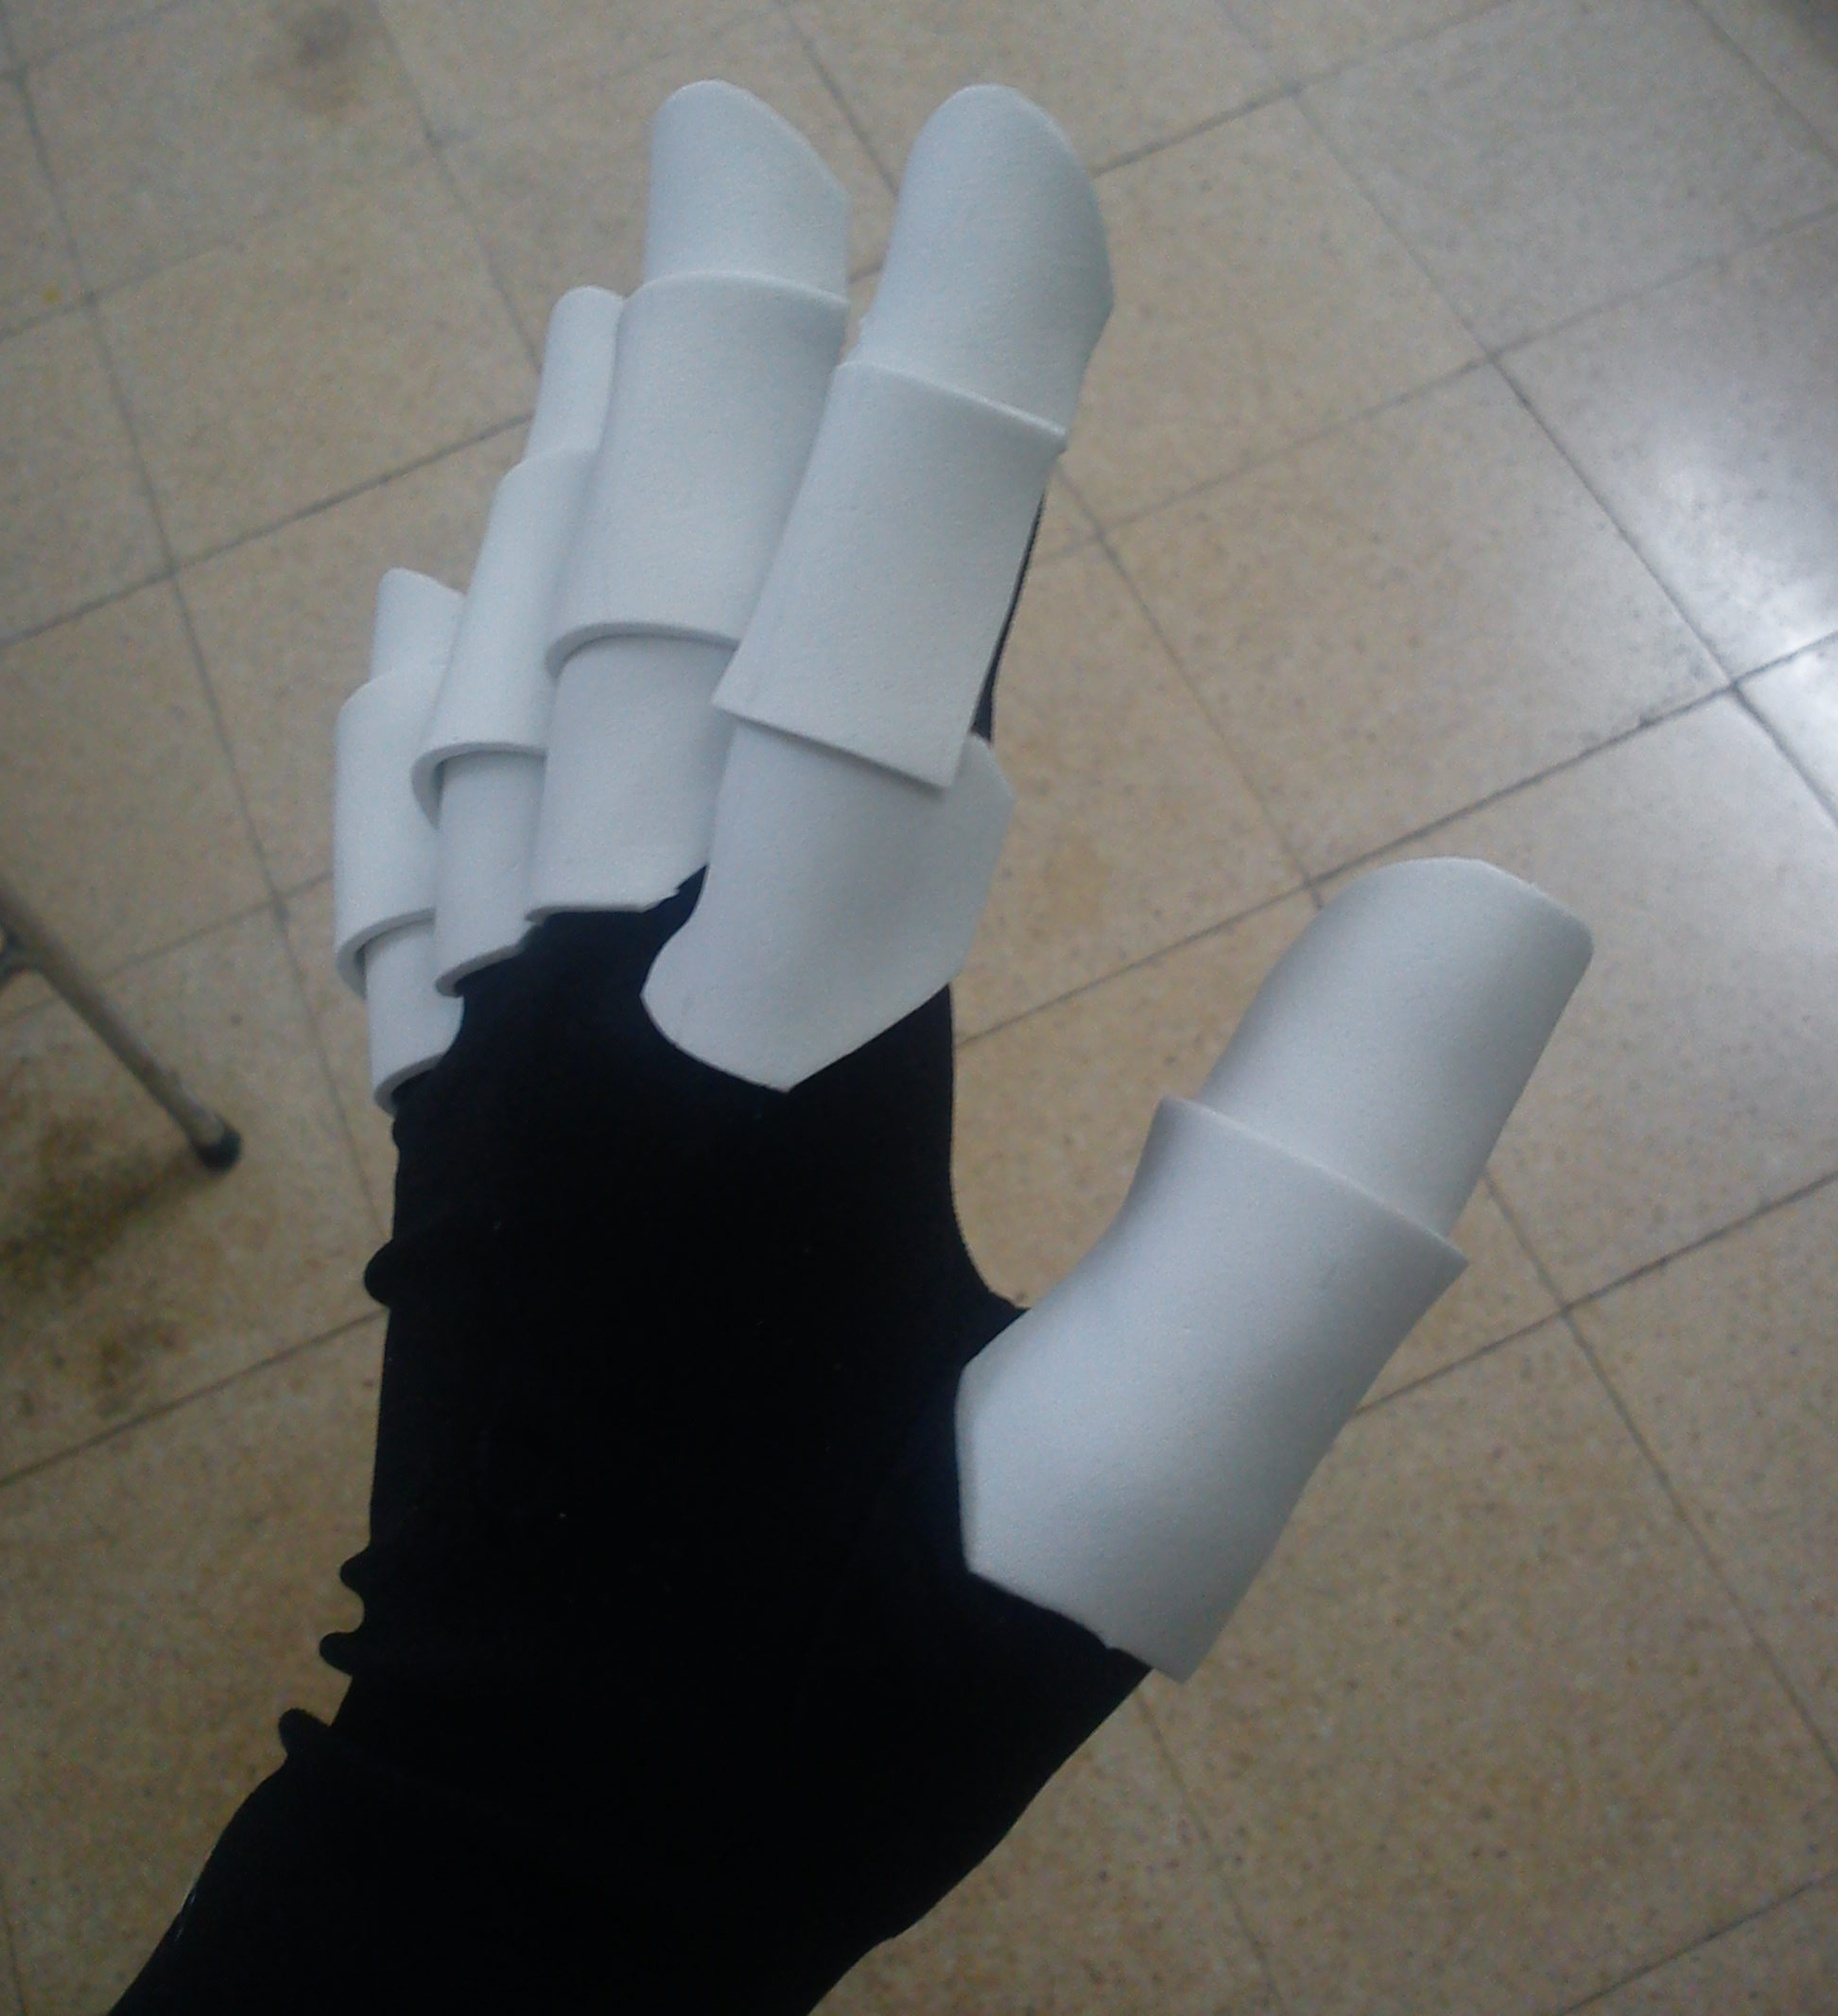 Picture of Gluing the Fingers